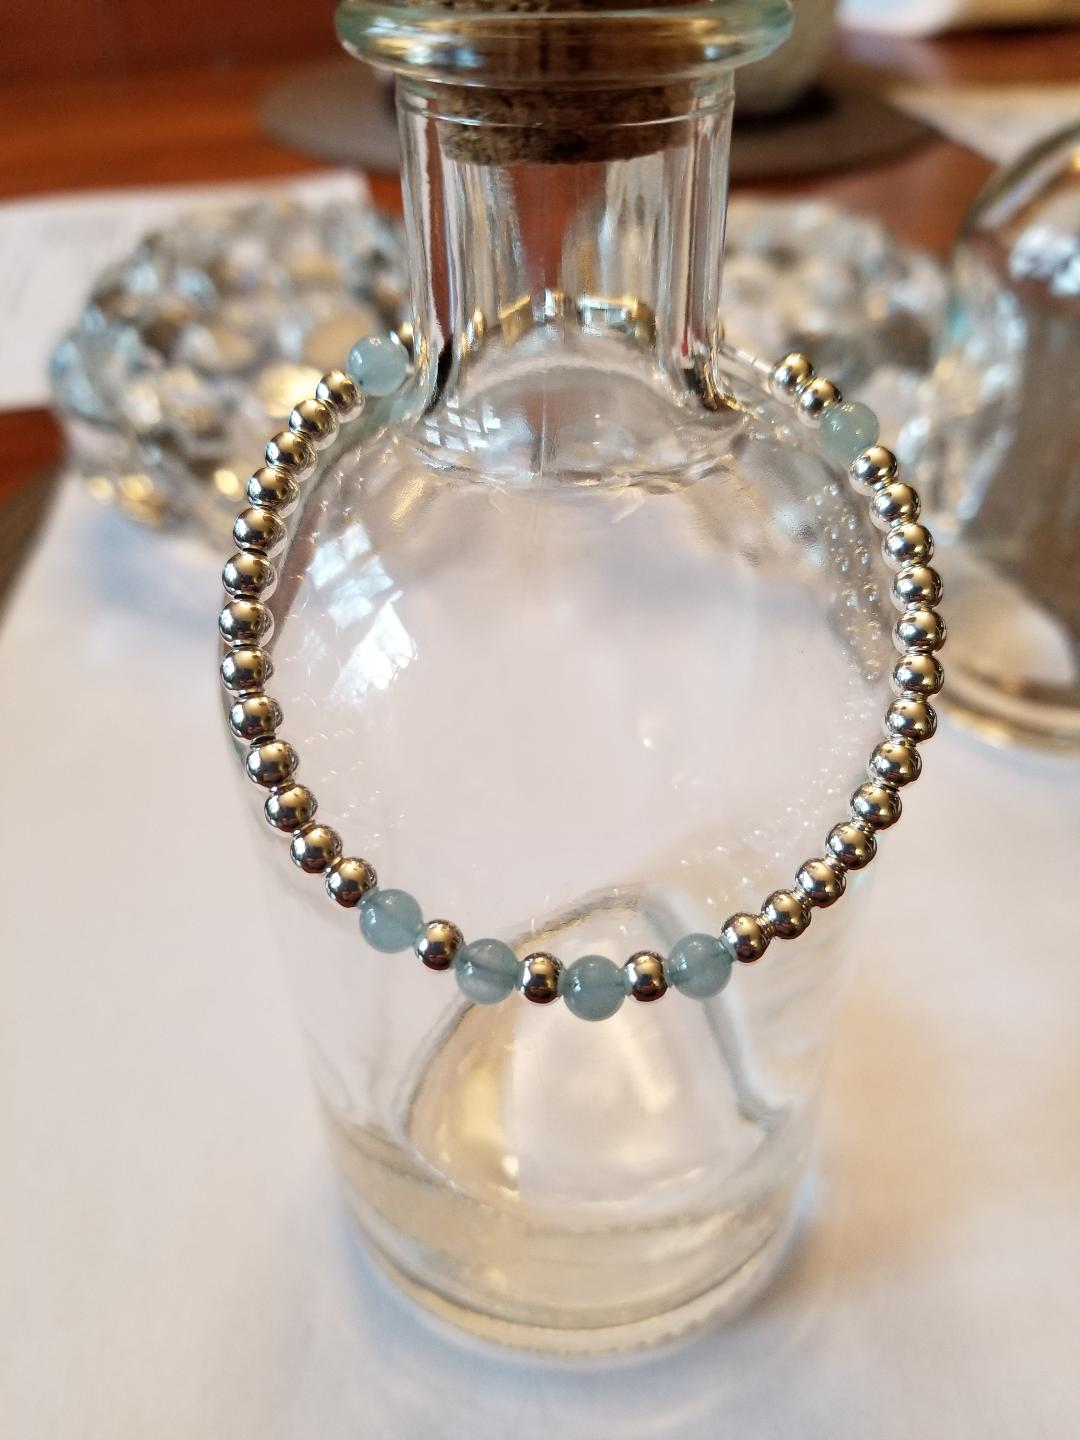 SWEET GEMS STERLING SILVER BRACELET WITH AQUAMARINE